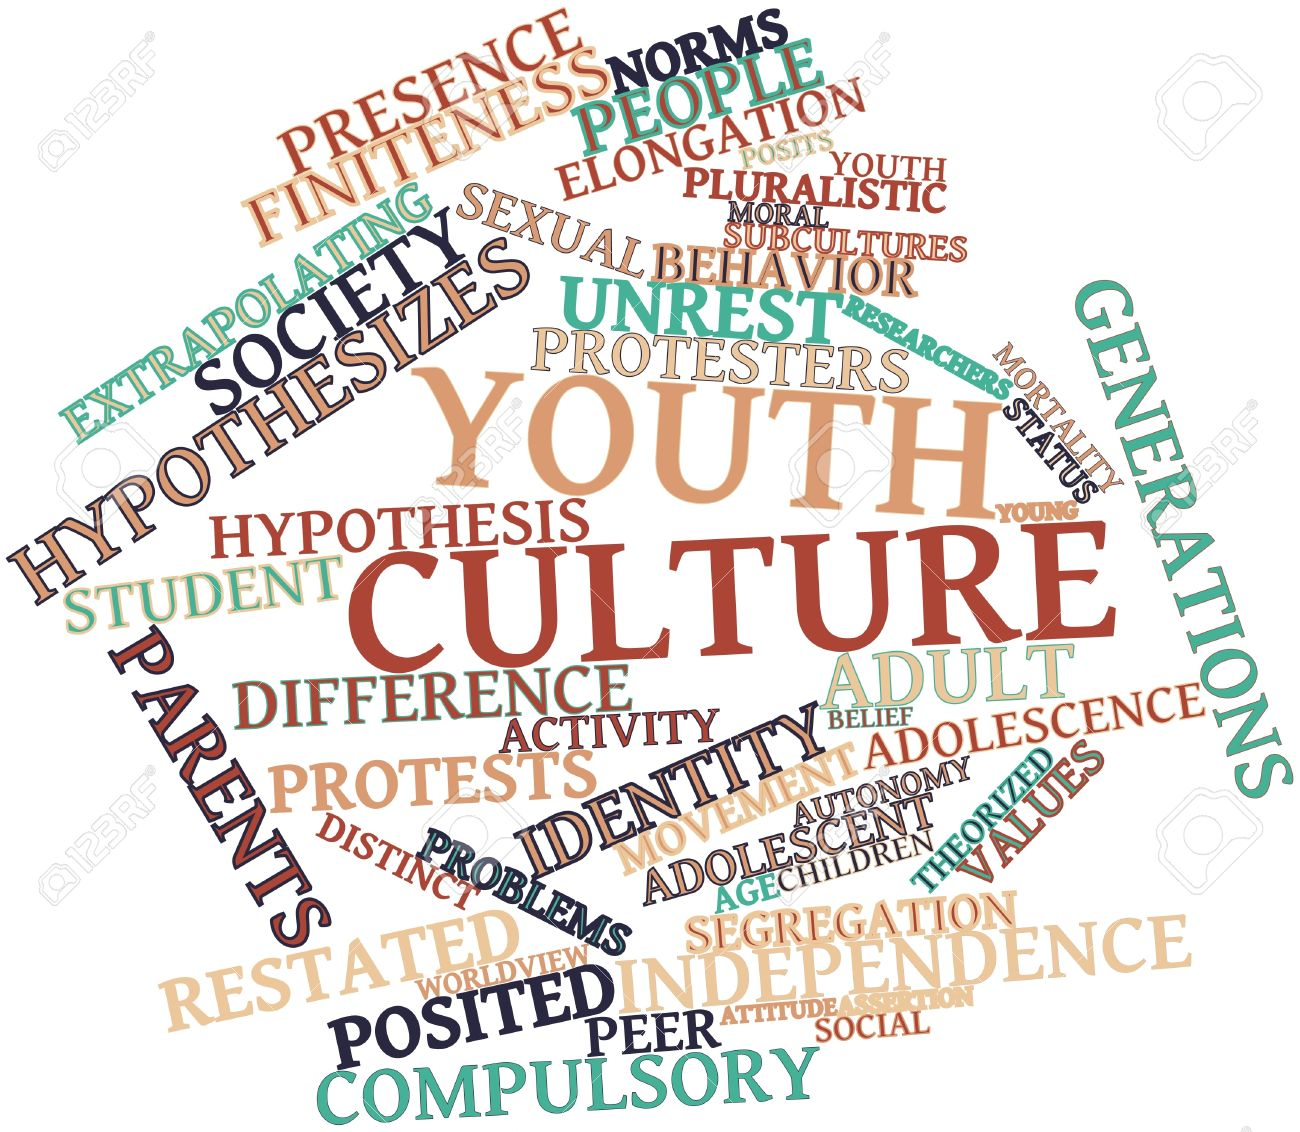 youth and the culture of materialism Material culture tends to diffuse more quickly than nonmaterial culture technology can spread through society in a matter of months, but it can take generations for the ideas and beliefs of society to change.